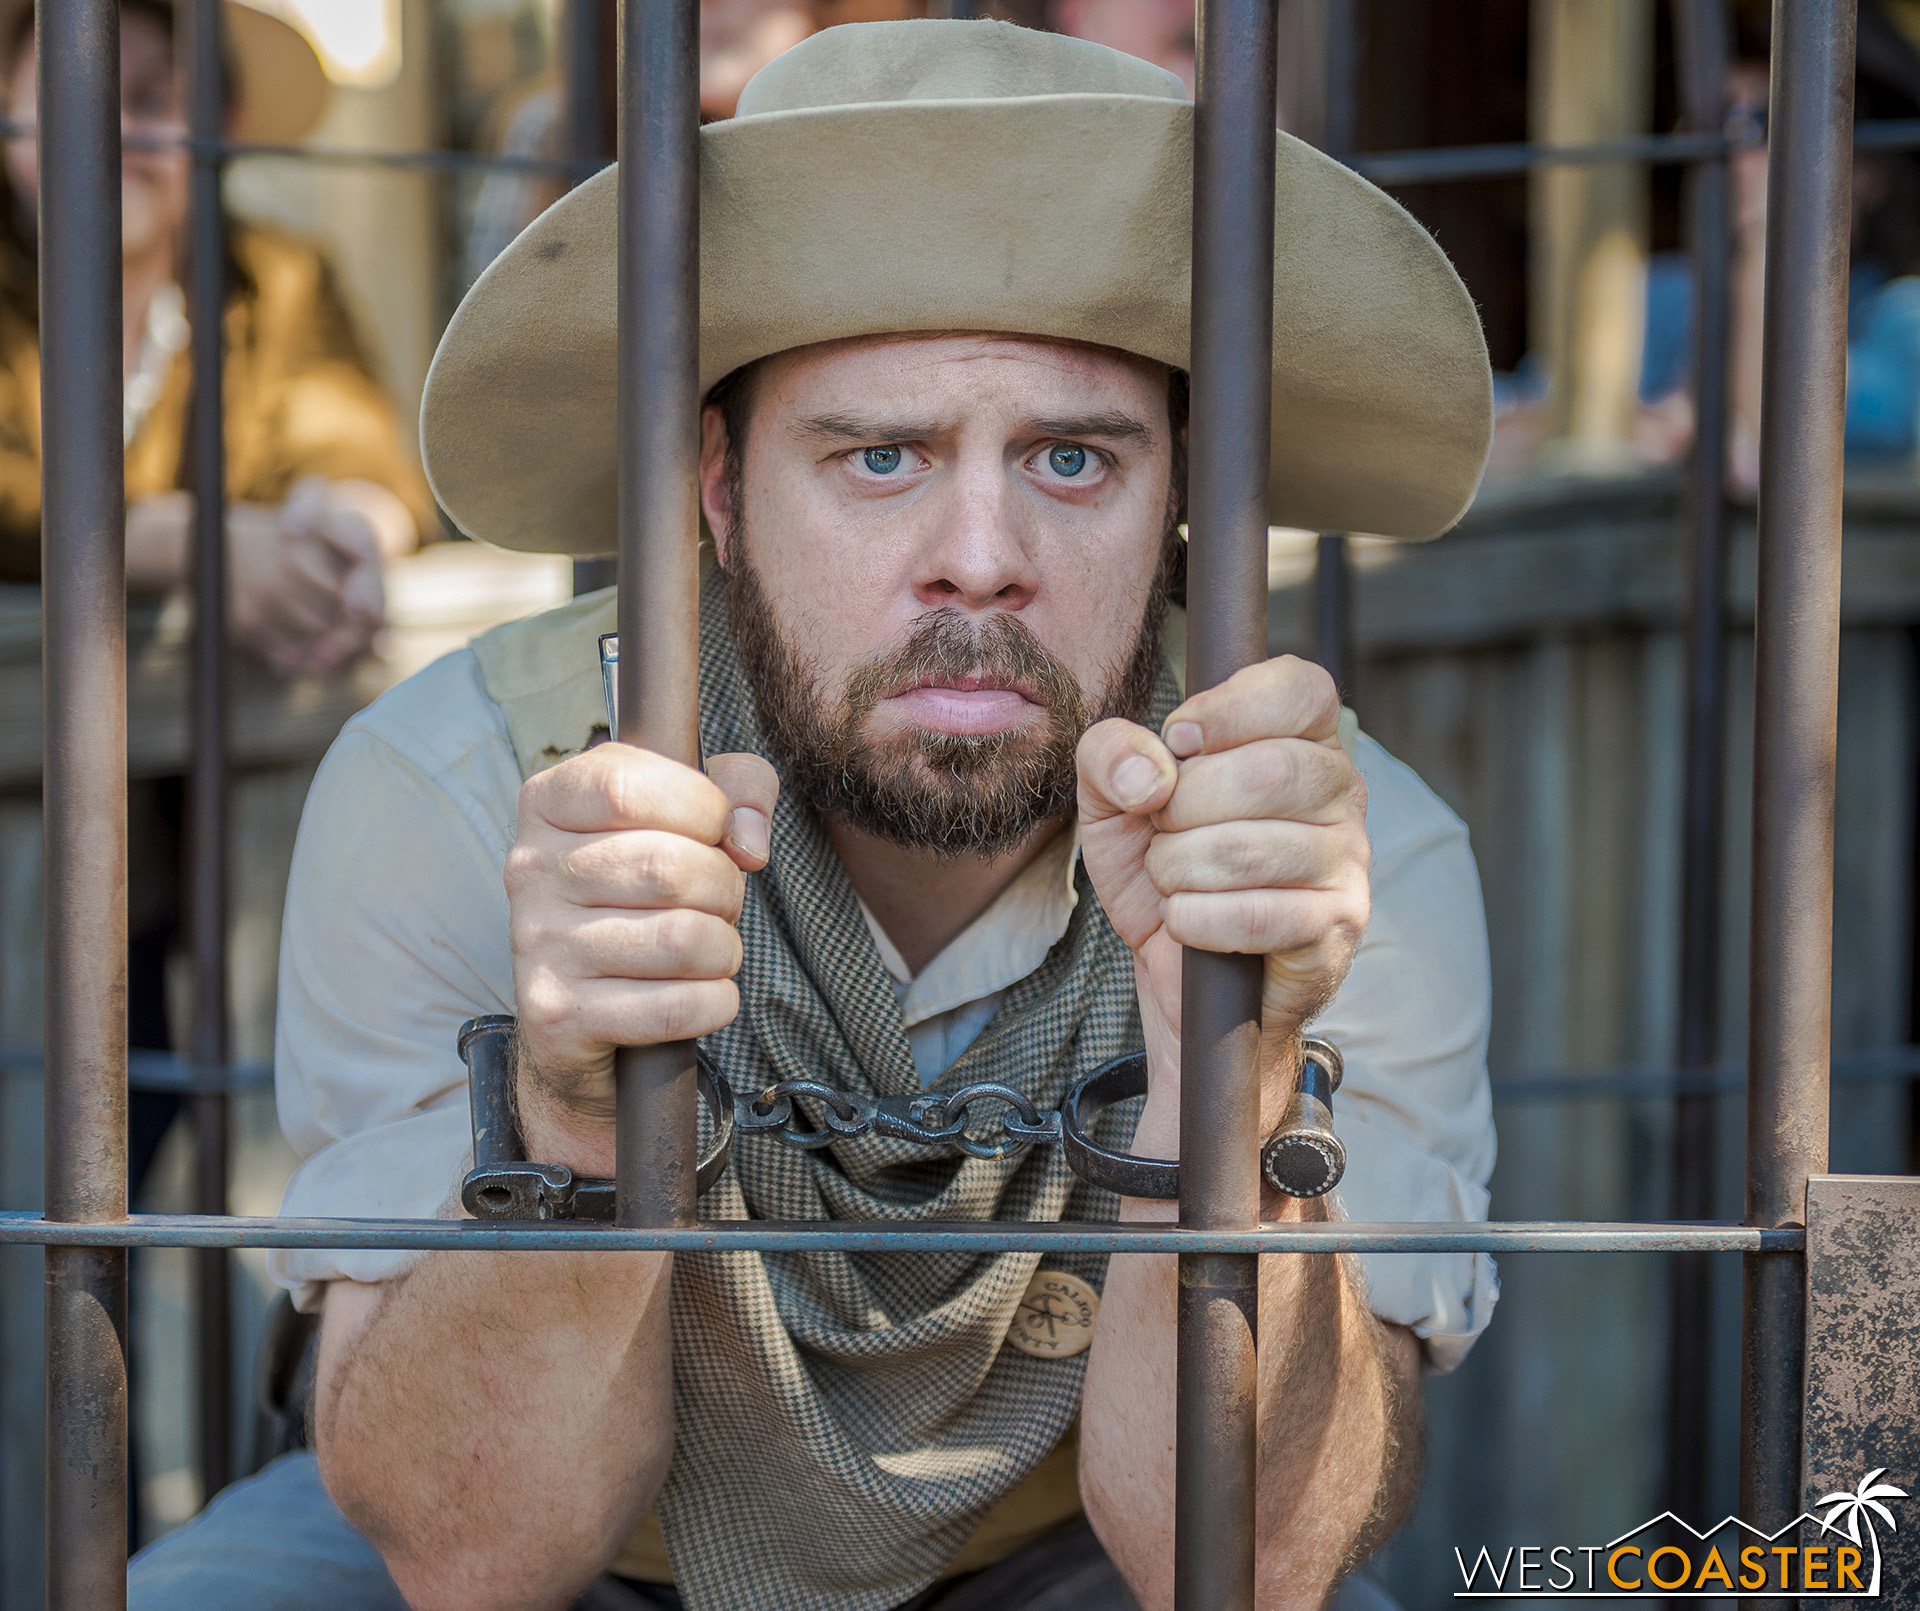 Clay's son, Tiny, often causing trouble or winding up in jail to look miserable.